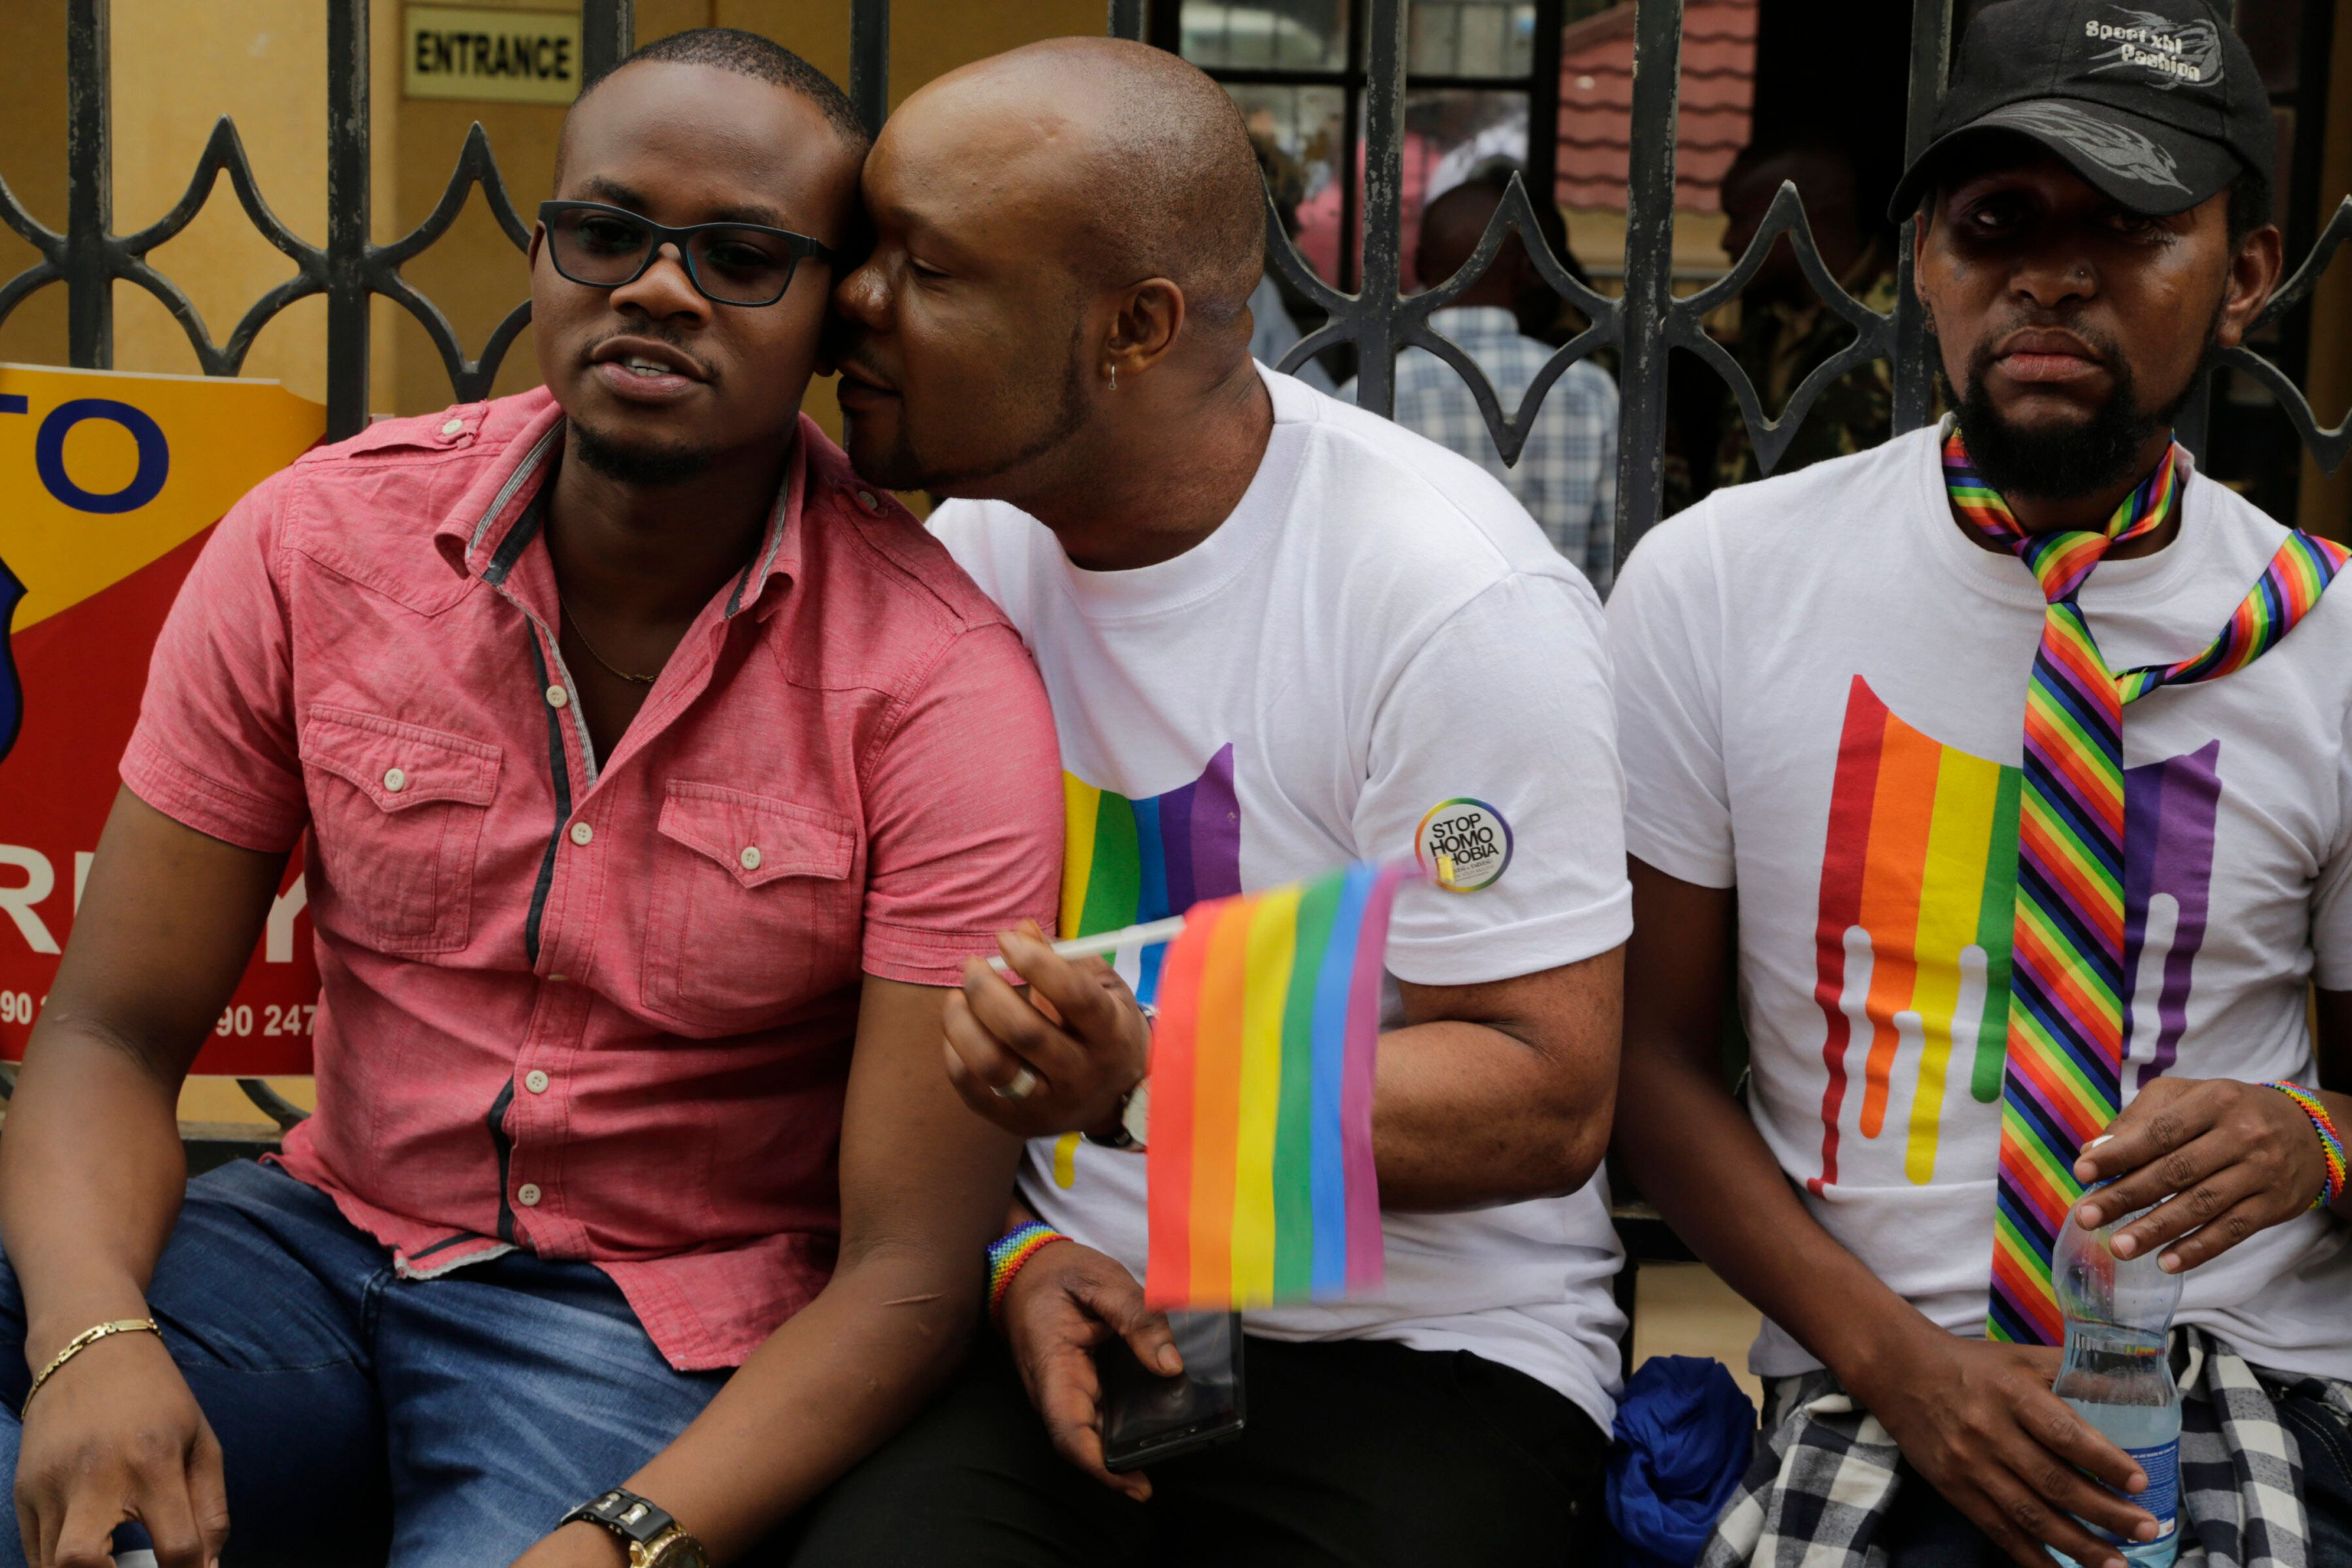 Kenya LGBT activists and their supporters gather outside the Milimani Court in Nairobi, Kenya, Friday, May 24, 2019. Kenya's High Court is due to rule Friday on whether laws that criminalise same sex relations are unconstitutional (AP Photo/Khalil Senosi)